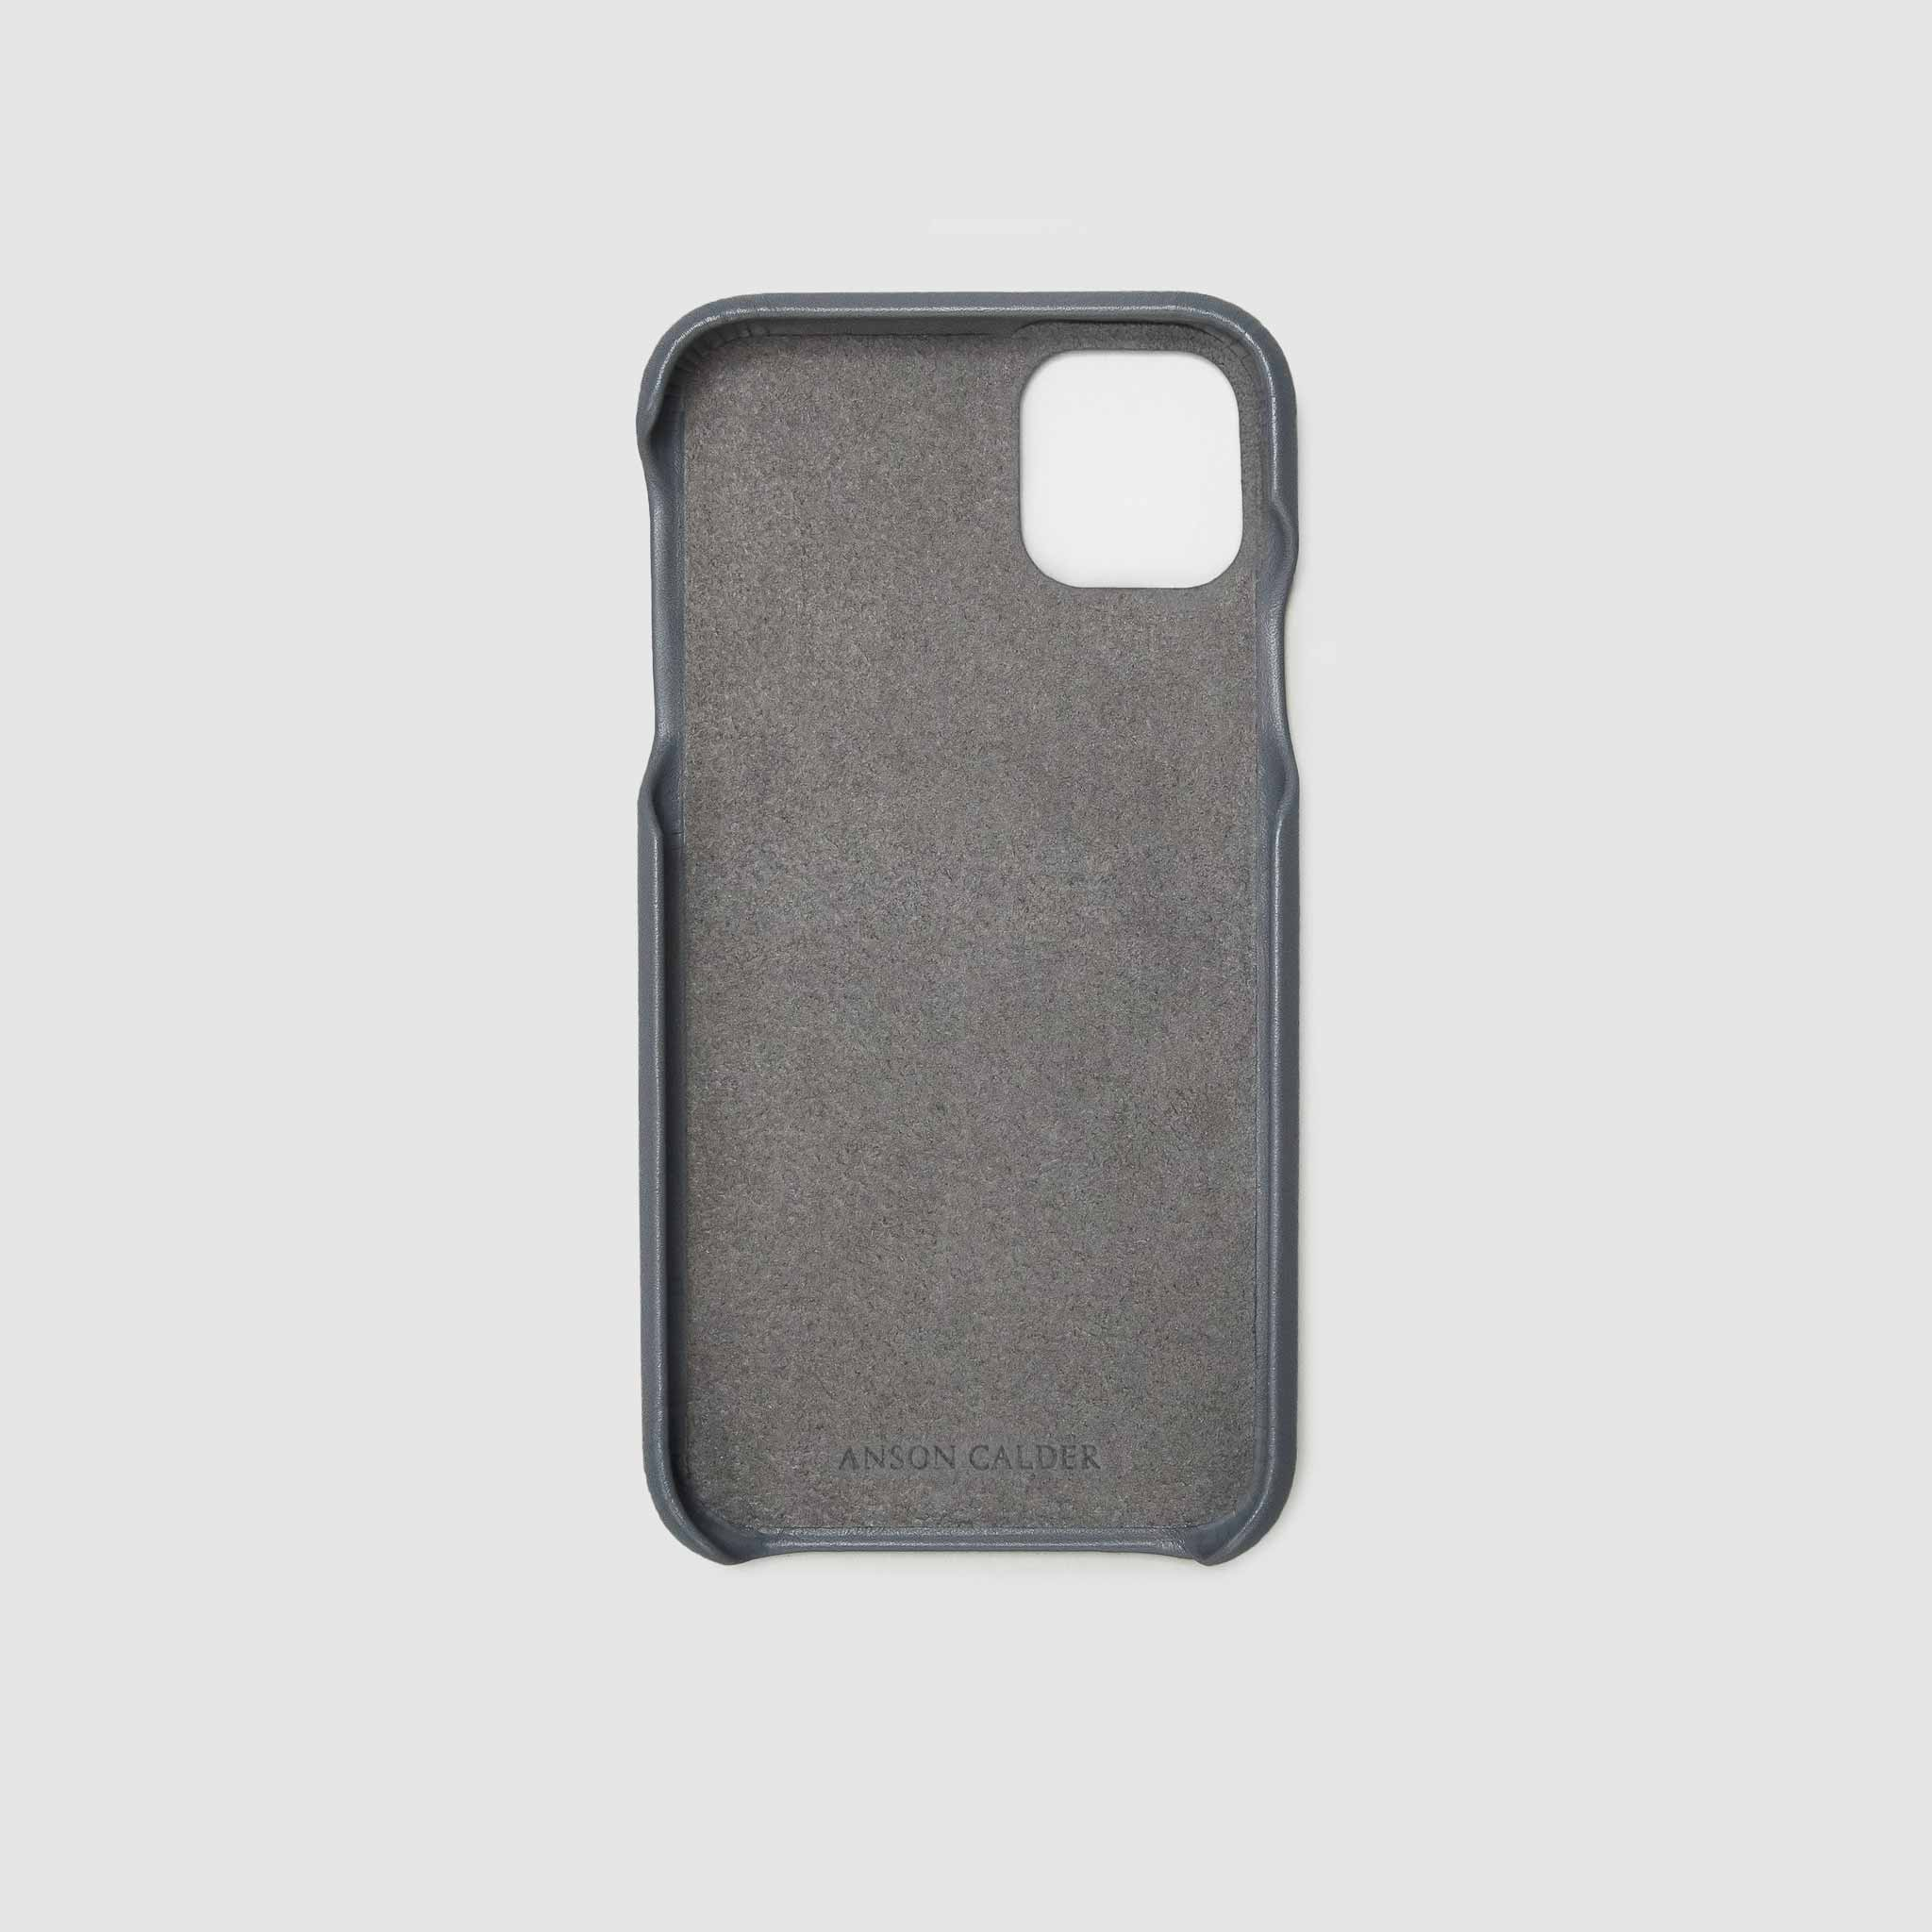 anson calder iphone case french calfskin 11 eleven pro max leather !iphone11pro-iphone11promax  _steel-grey